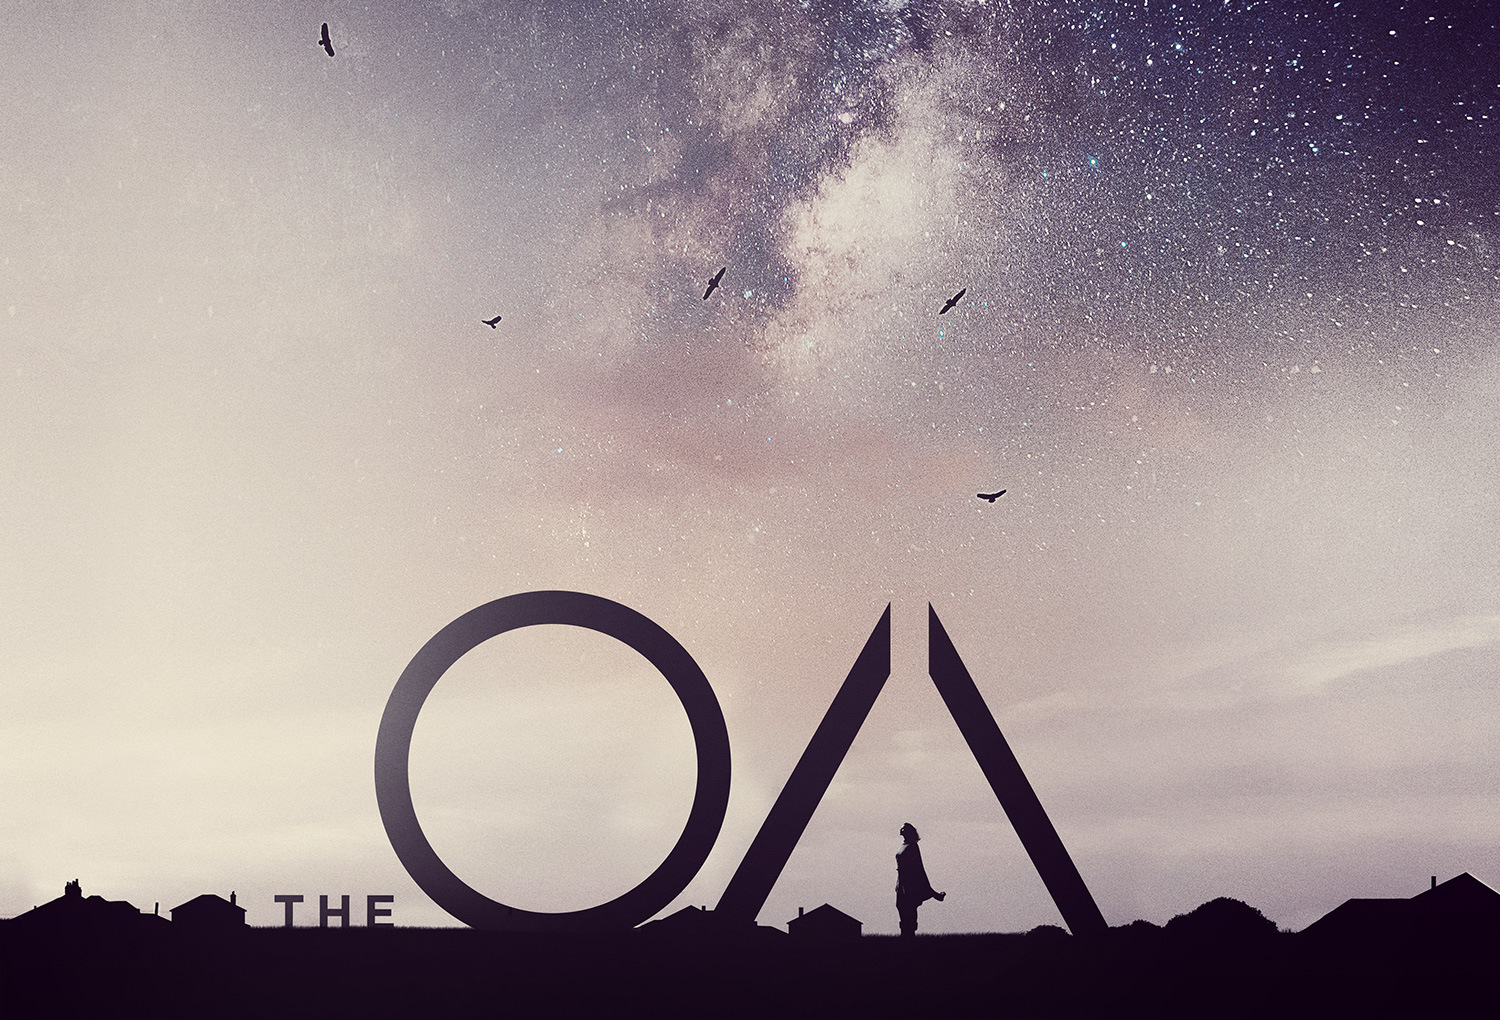 The OA, FIB Netflix top picks, cool TV, Netflix shows, sci-fi